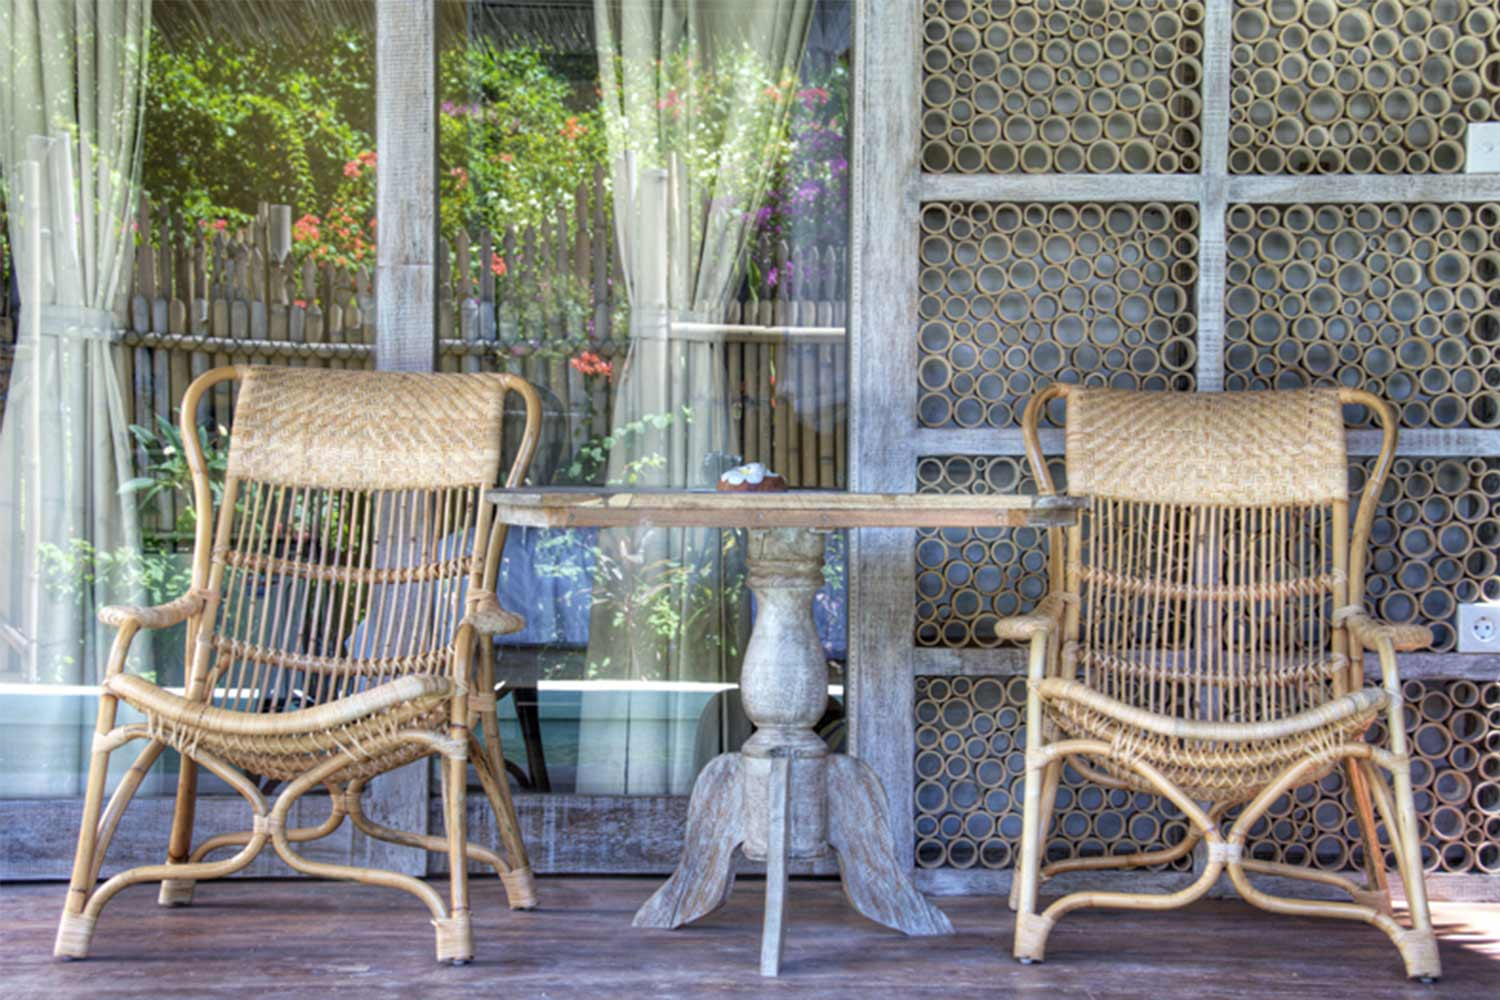 villa hotel Terrace in gili islands